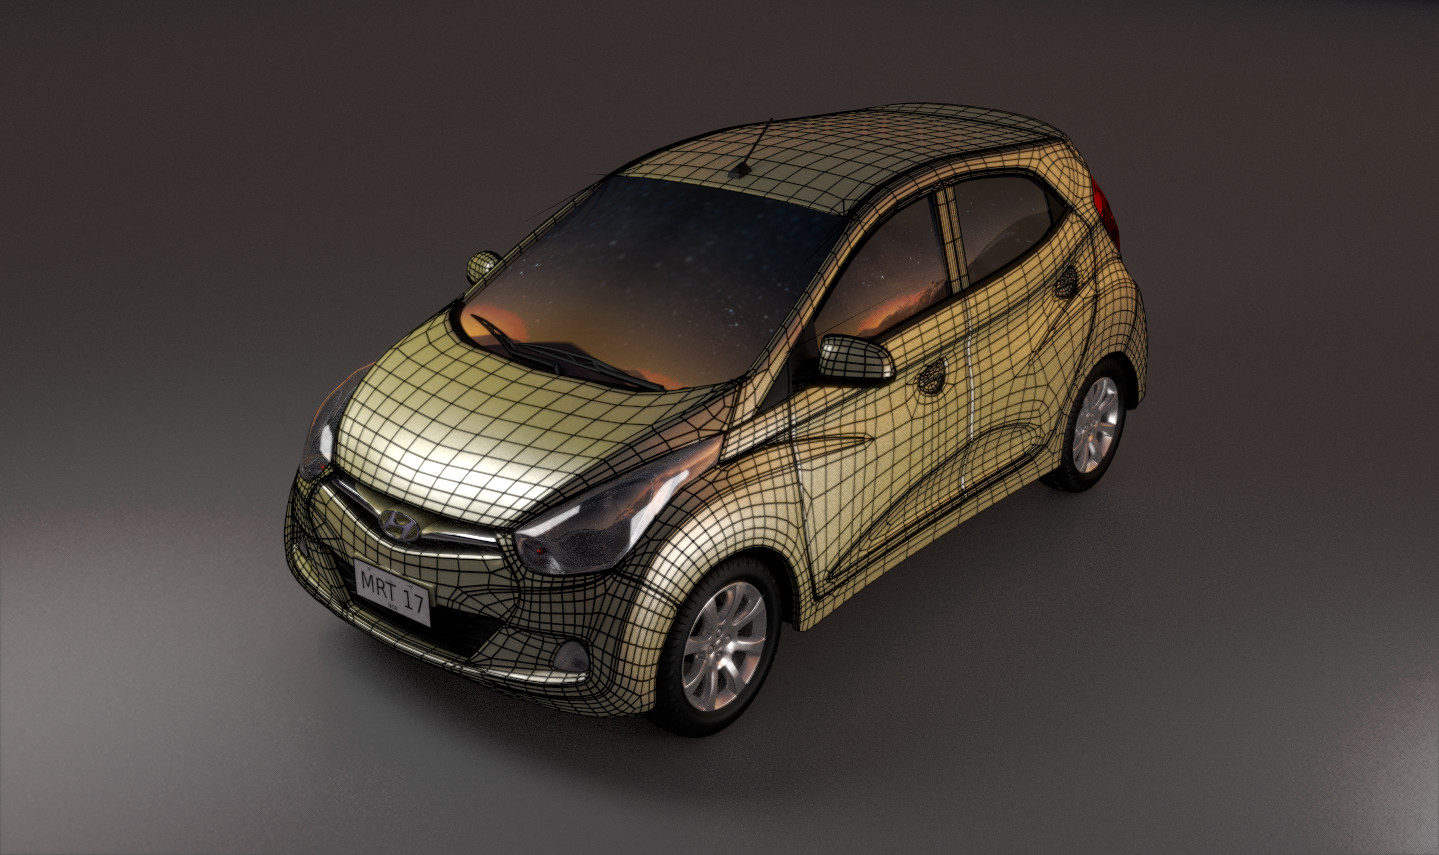 Here is the wireframe render of the front end of the model.